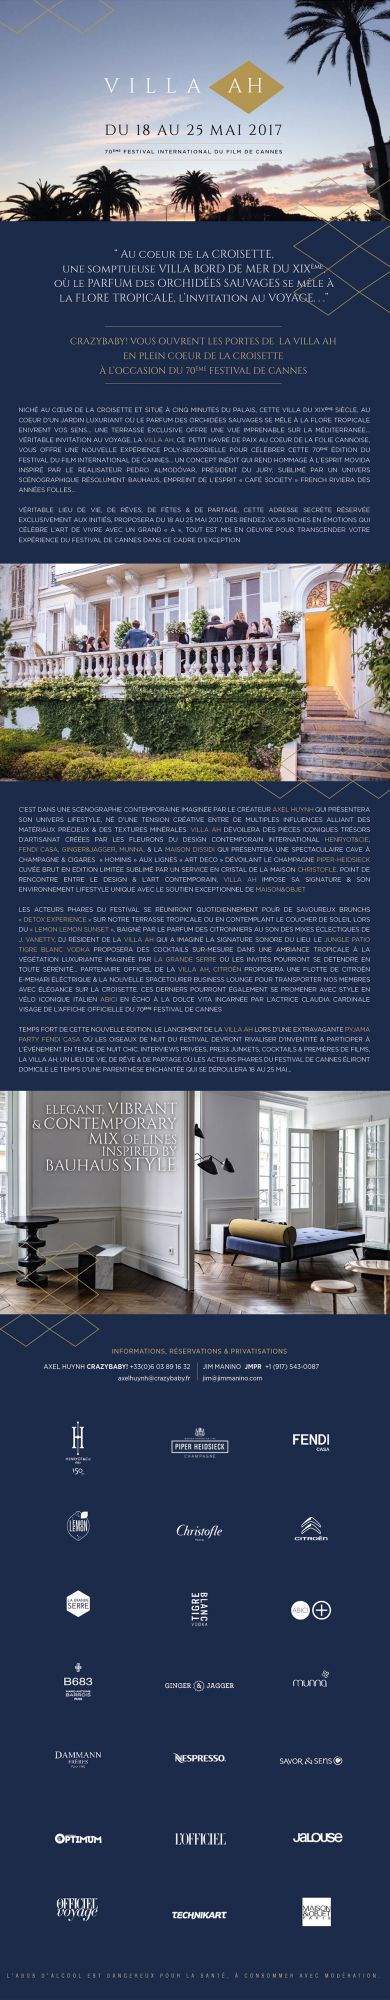 newsletters_cannes_2017_villa_ah_v8